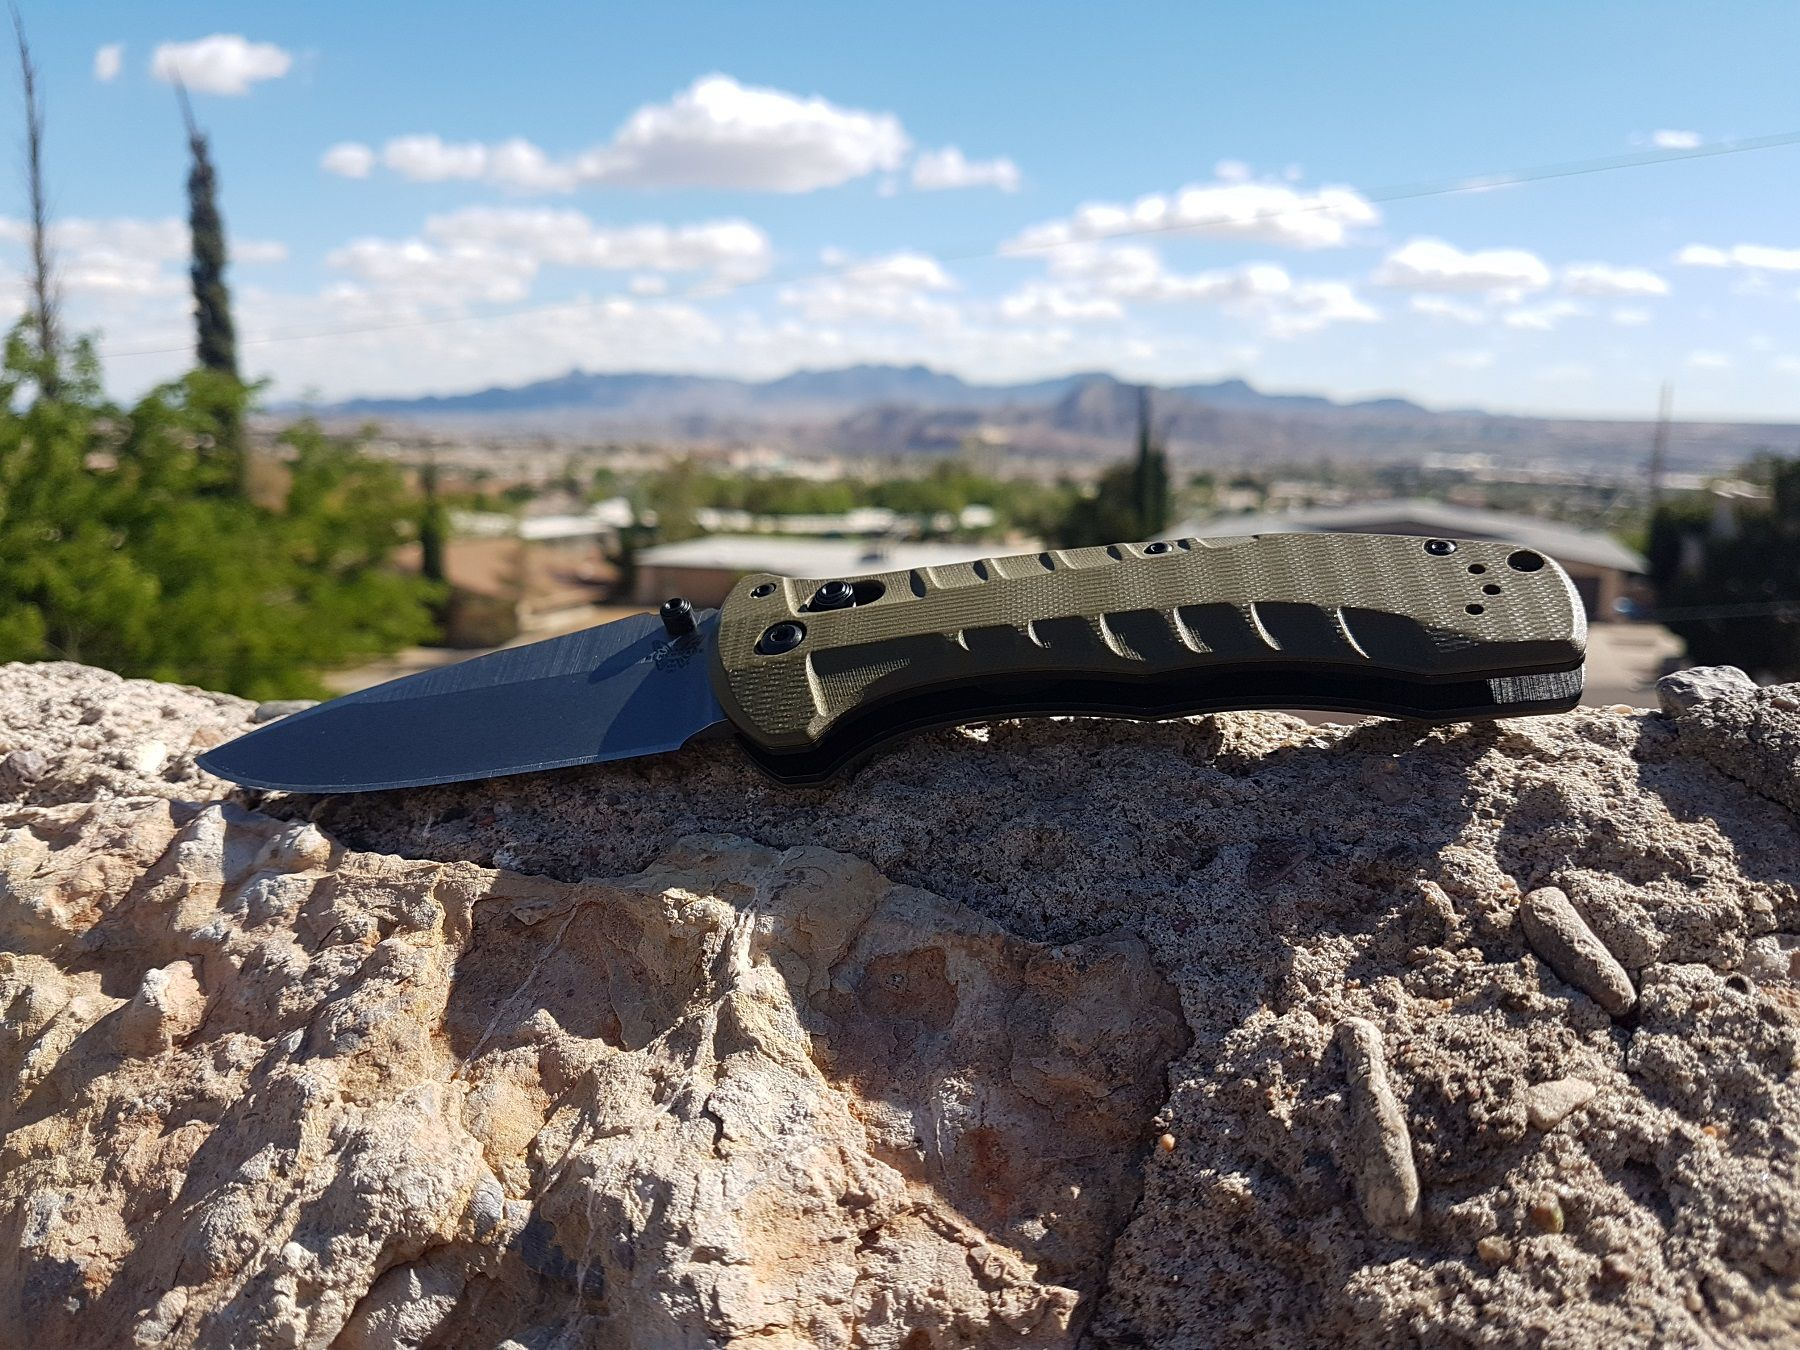 The Benchmade 980 TURRET tactical folding knife is a very large 100% ambidextrous Axis lock folder with a 9.40cm (3.7in) drop point blade of CPM-S30V steel, 3.150mm (0.124in) thick.